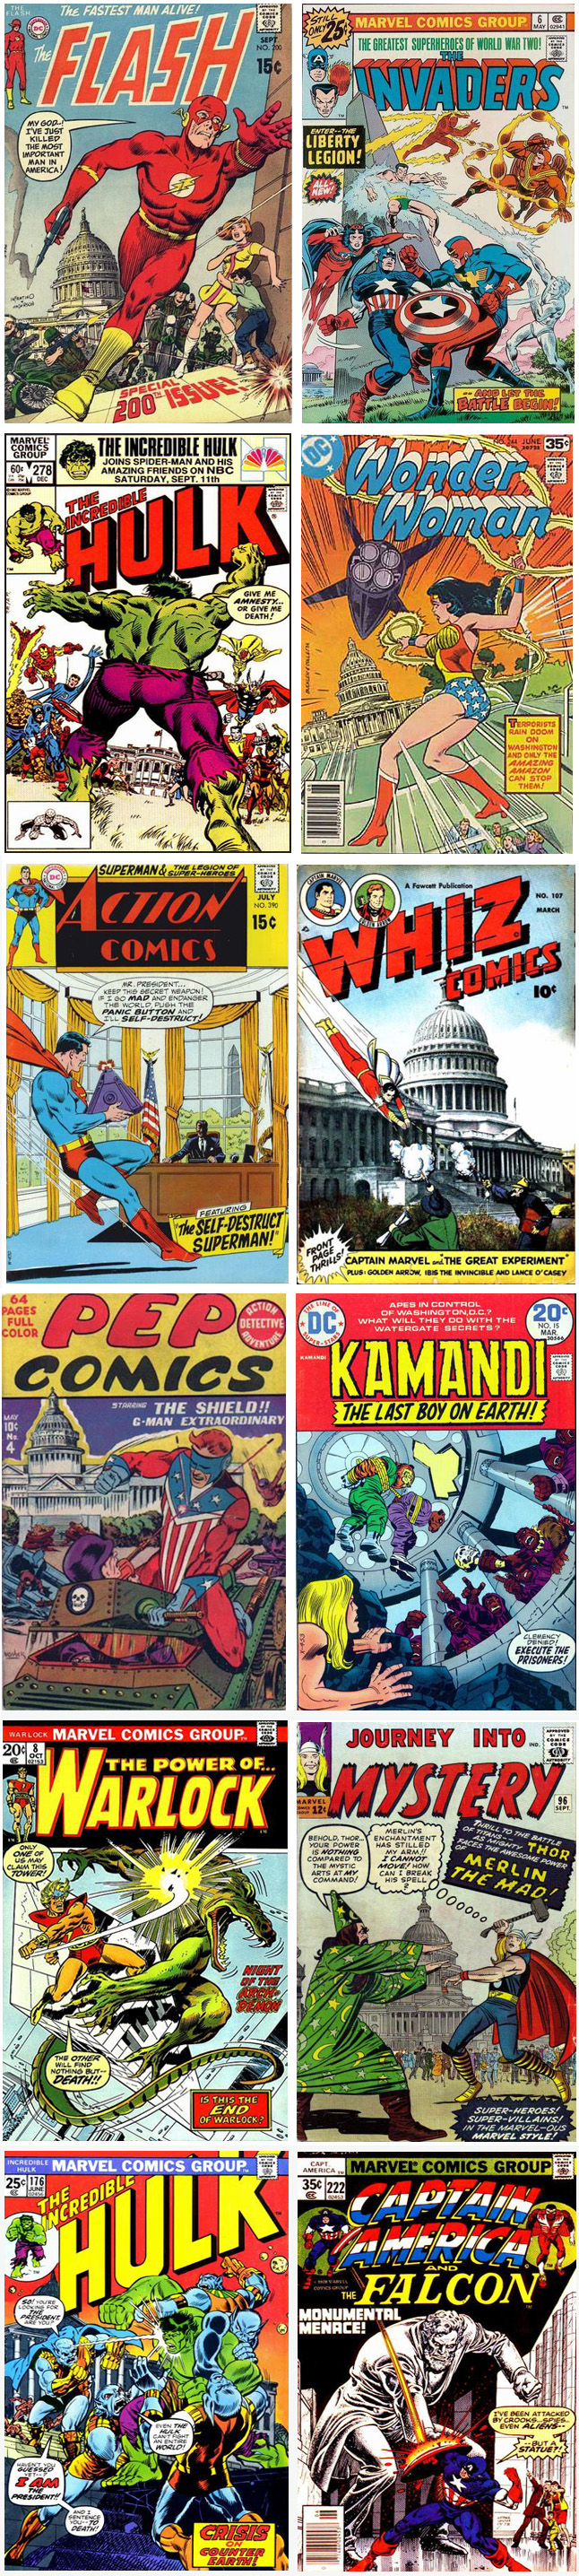 Washington_dc_covers